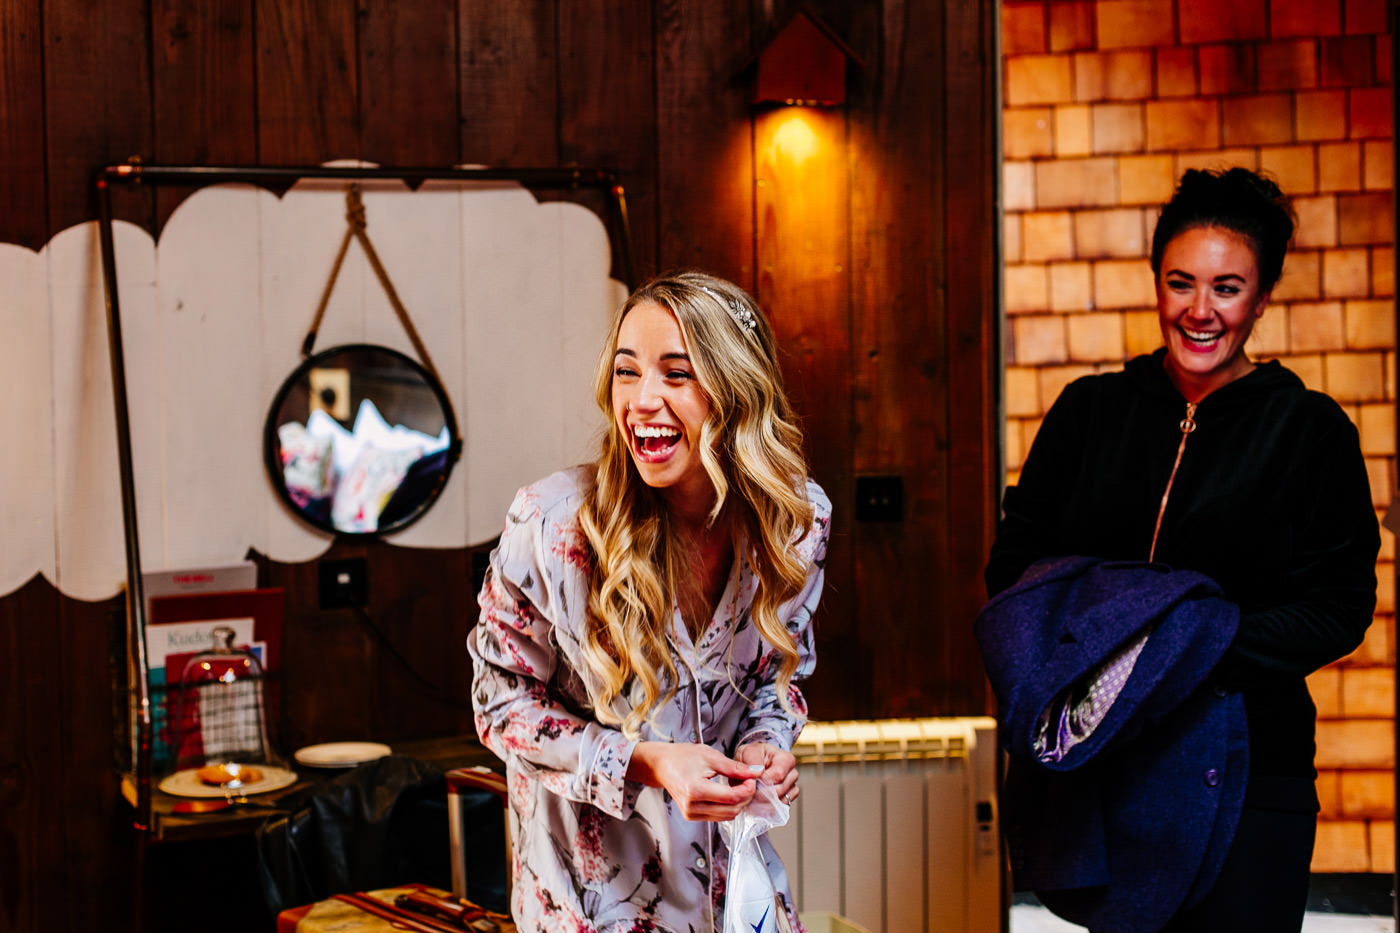 The-bell-in-Ticehurst-pub-kent-wedding-photographer-London-Epic-Love-Story-020